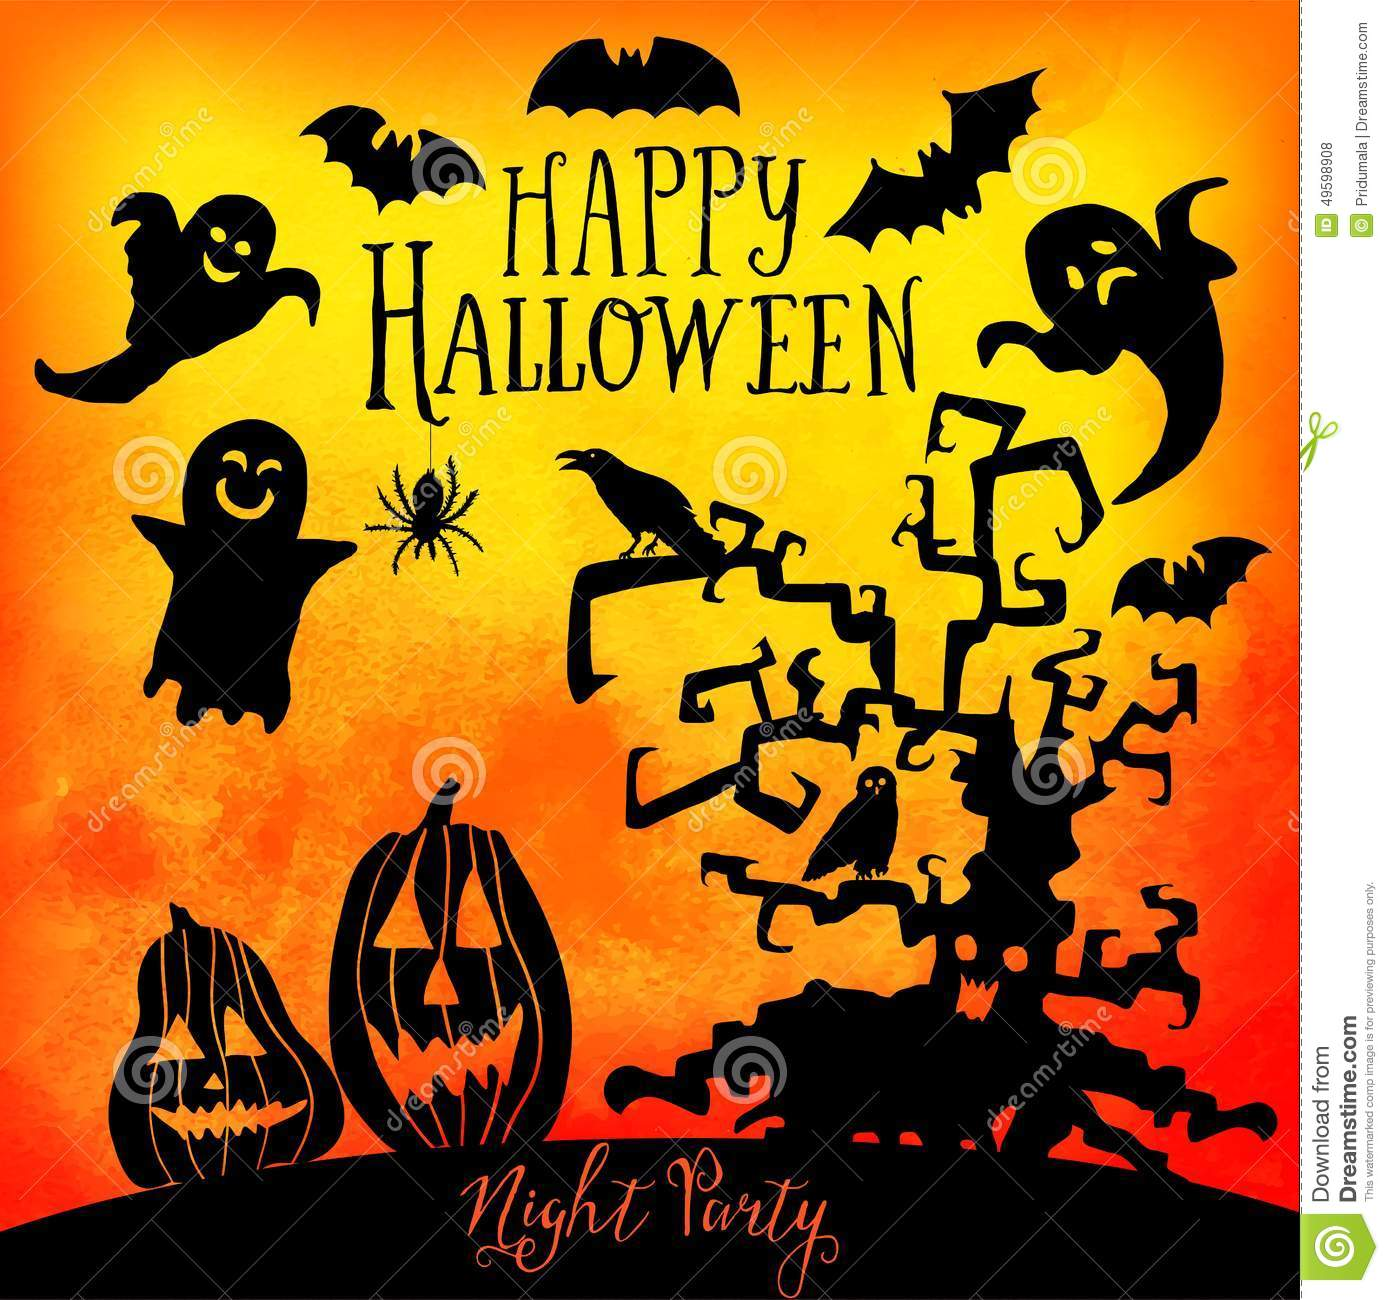 Vector happy halloween greeting card doodles element for vector happy halloween greeting card doodles element for halloween design set of halloween silhouettes on watercolor backgroun kristyandbryce Images